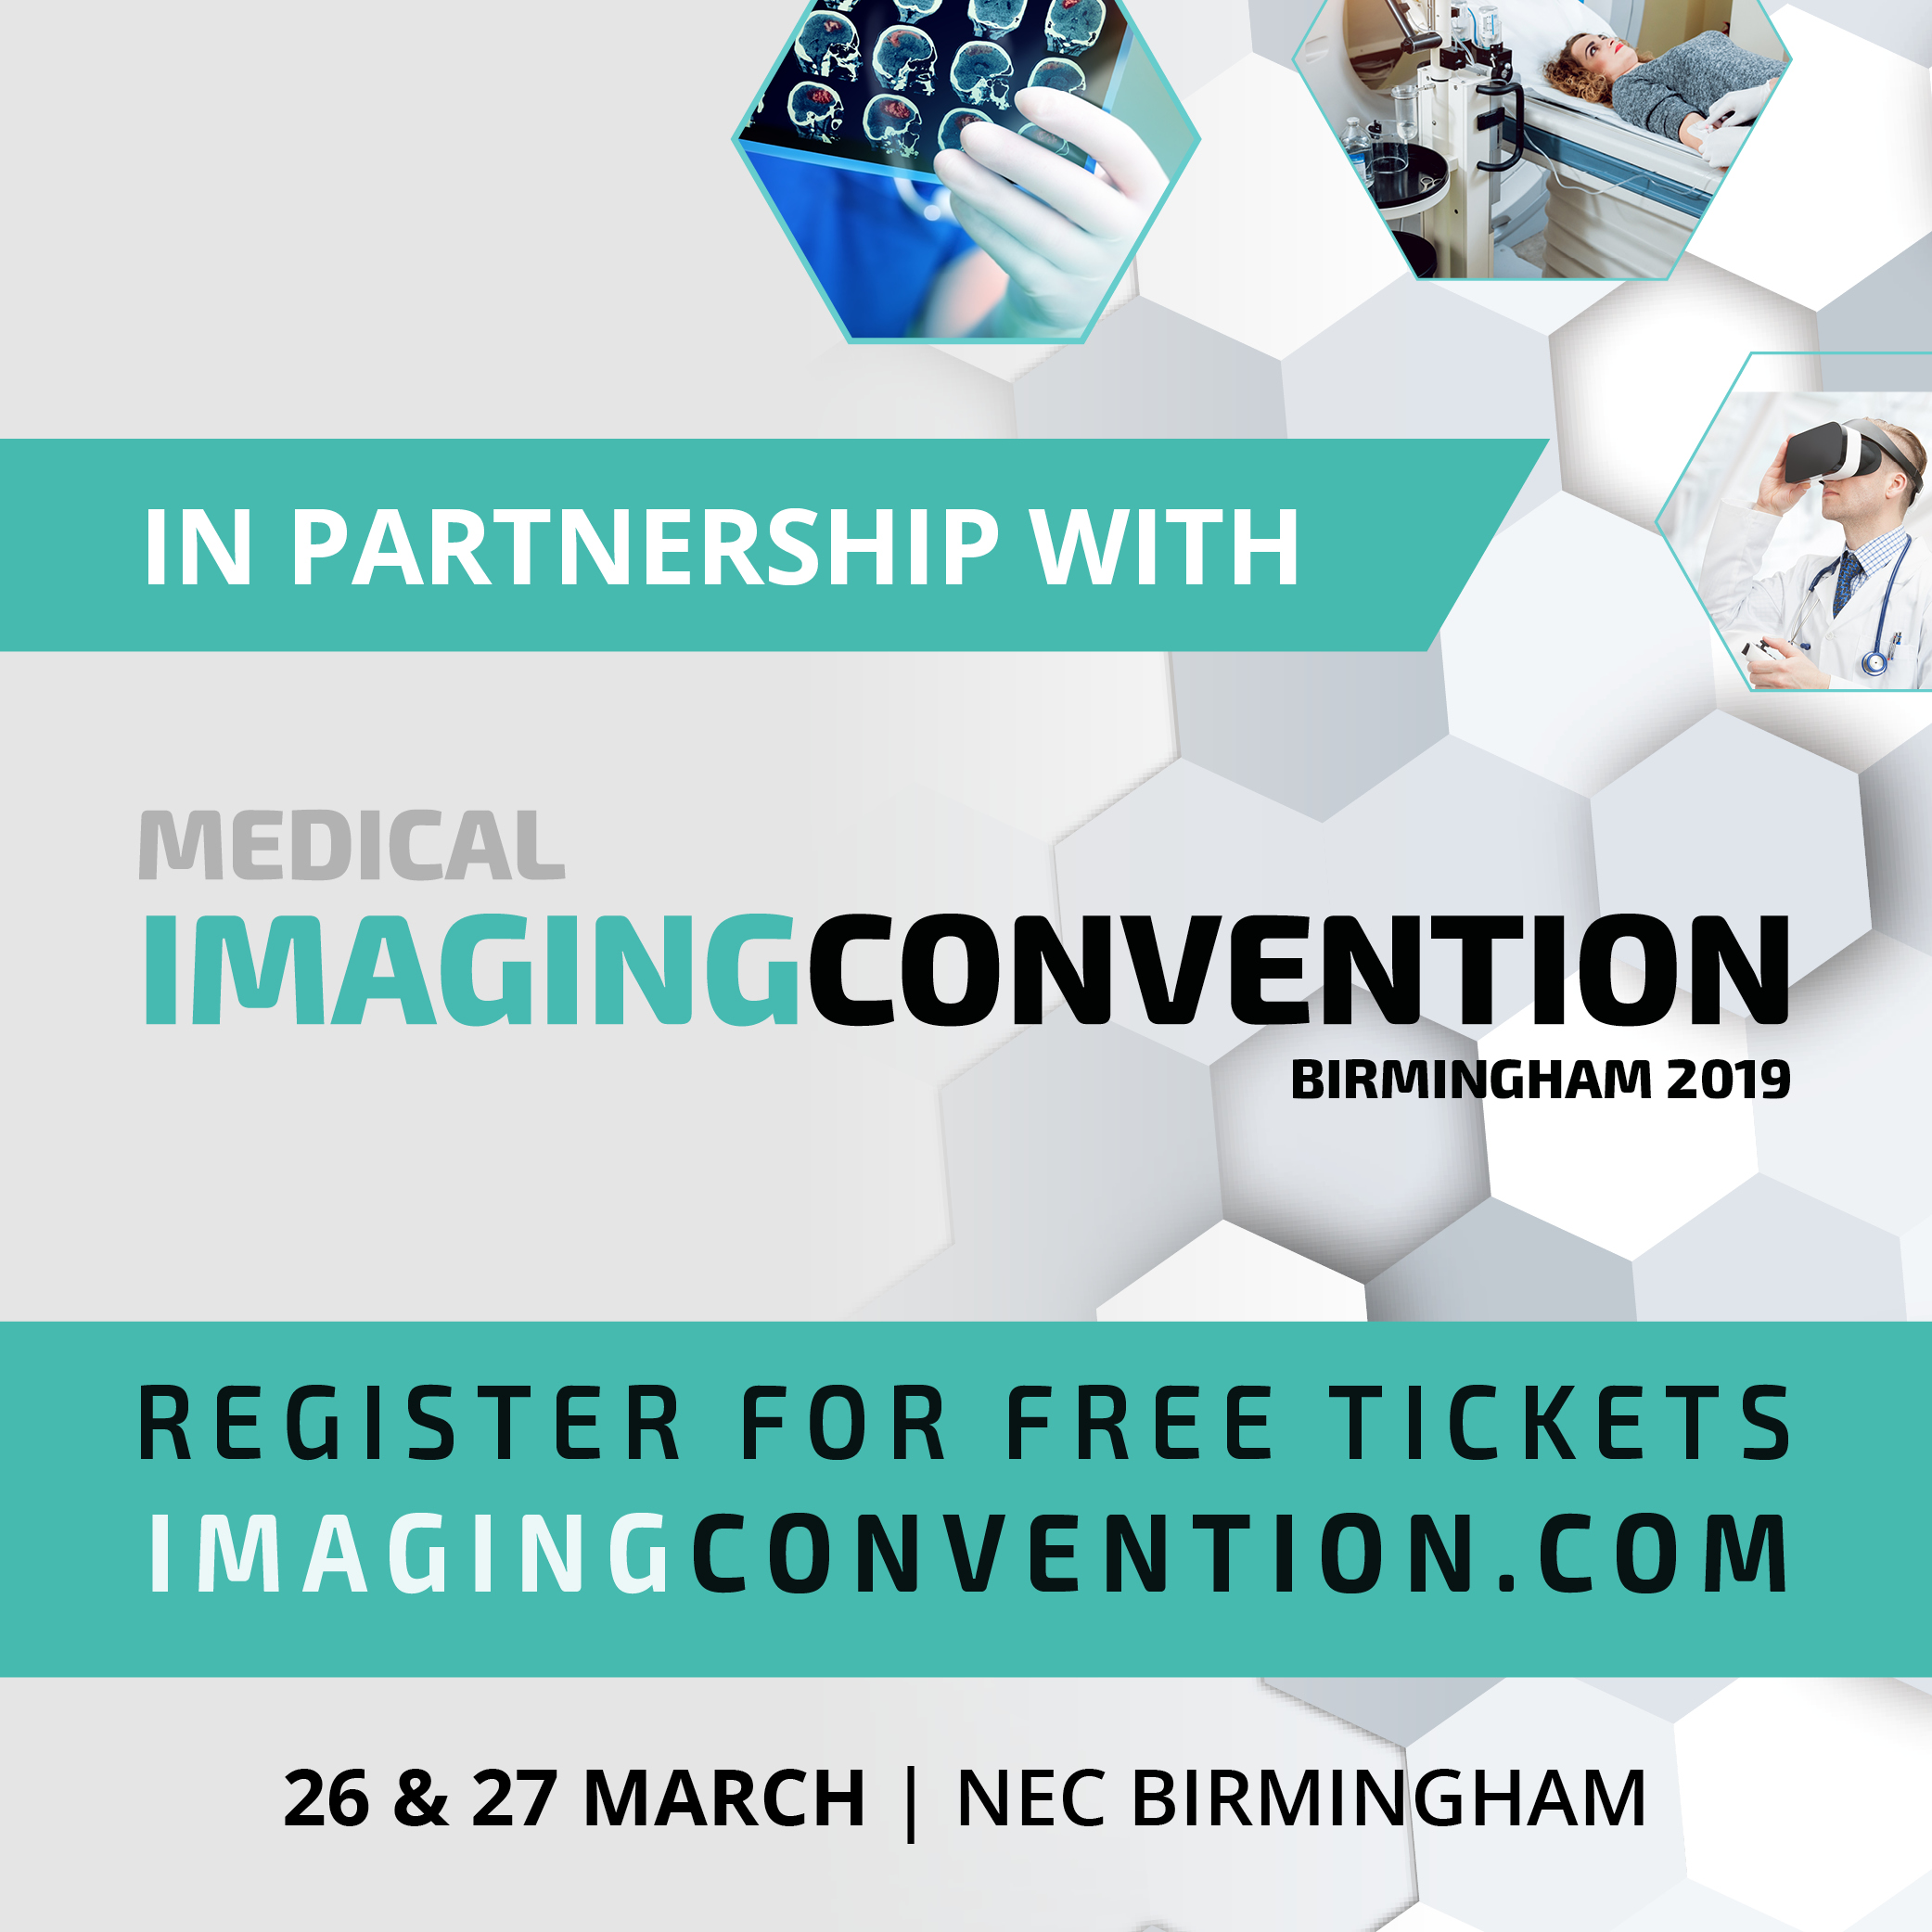 Medical Imaging Convention partnership